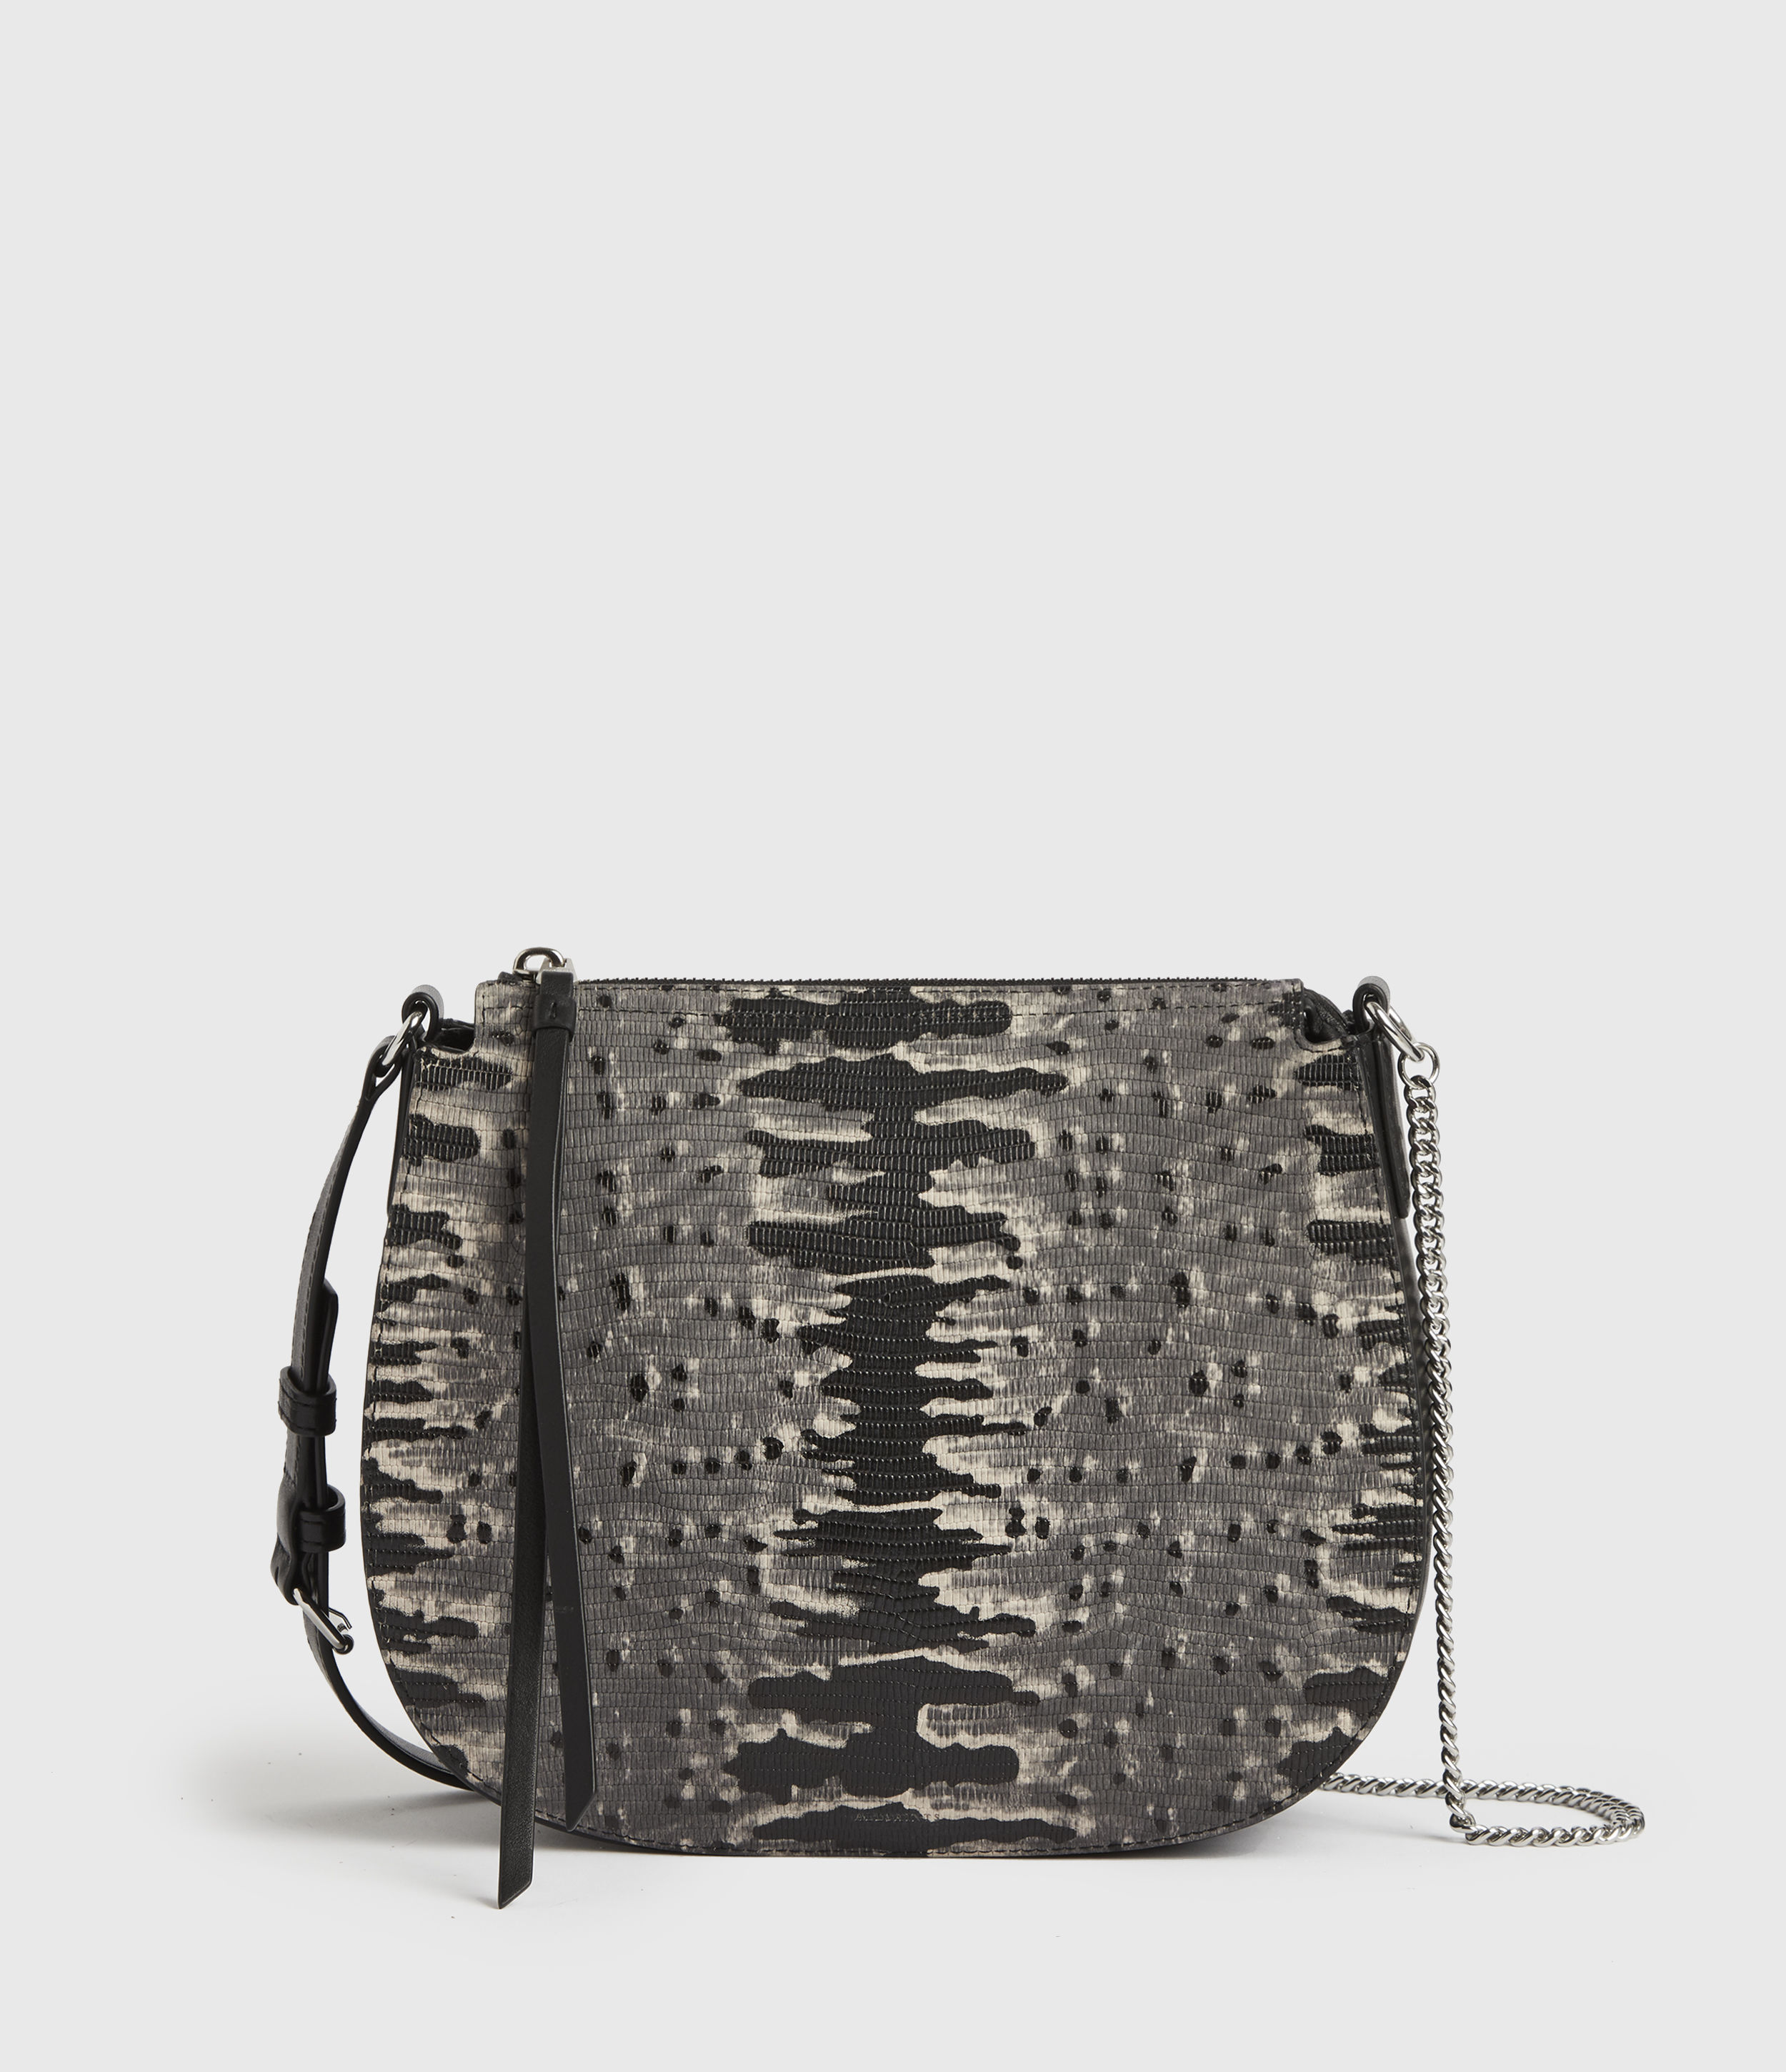 AllSaints Women's Leather Reptile Print Lightweight Elsworth Round Crossbody Bag, Grey and Black